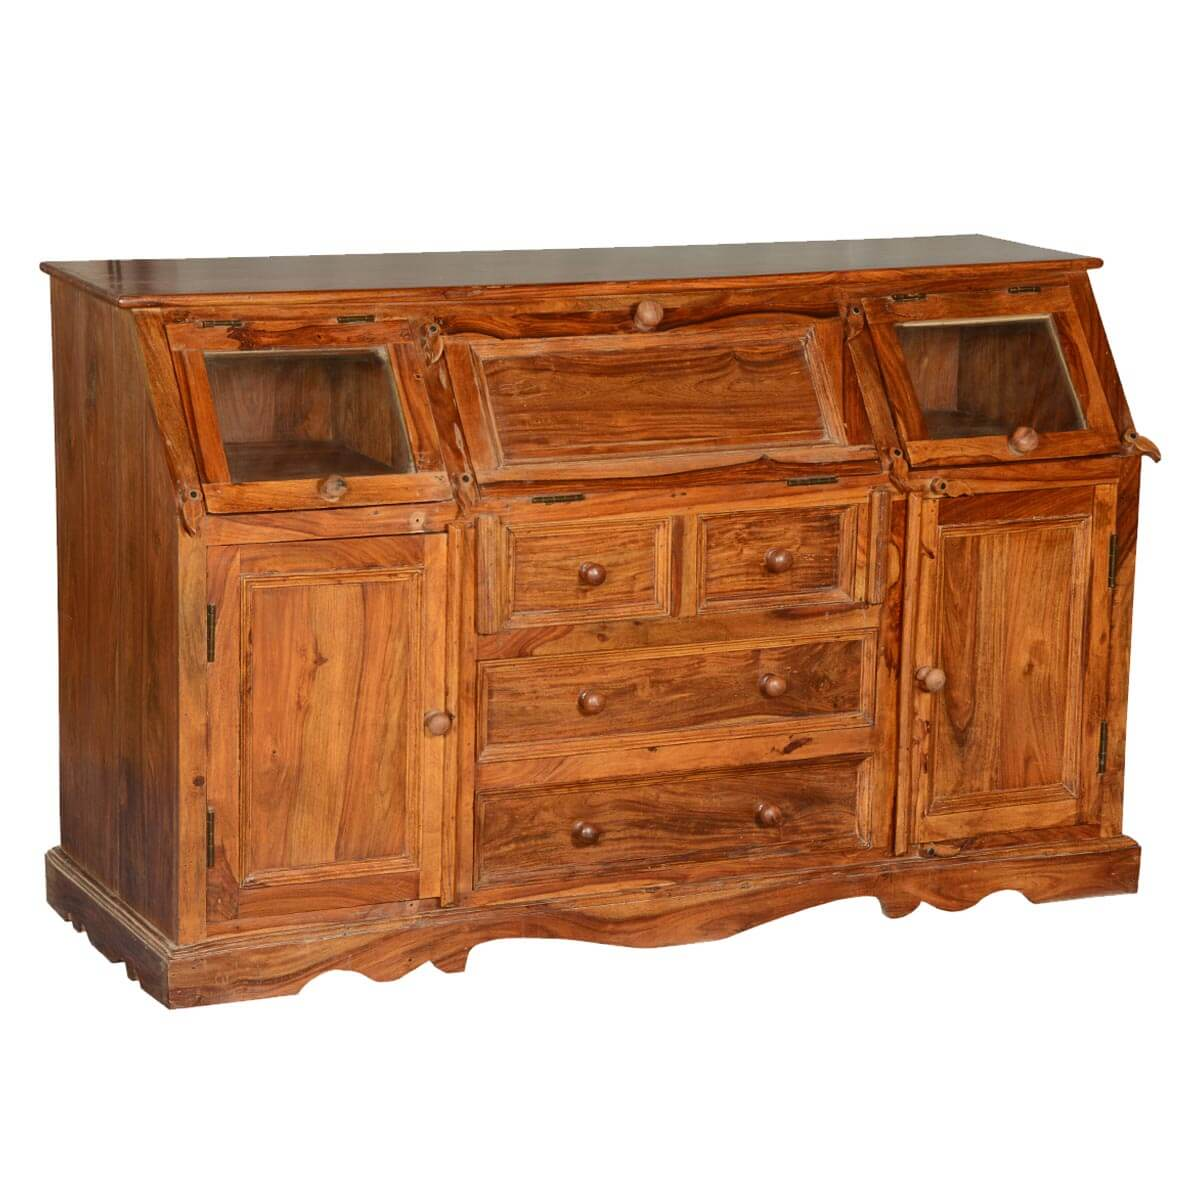 Clarington solid wood sideboard credenza with drawers